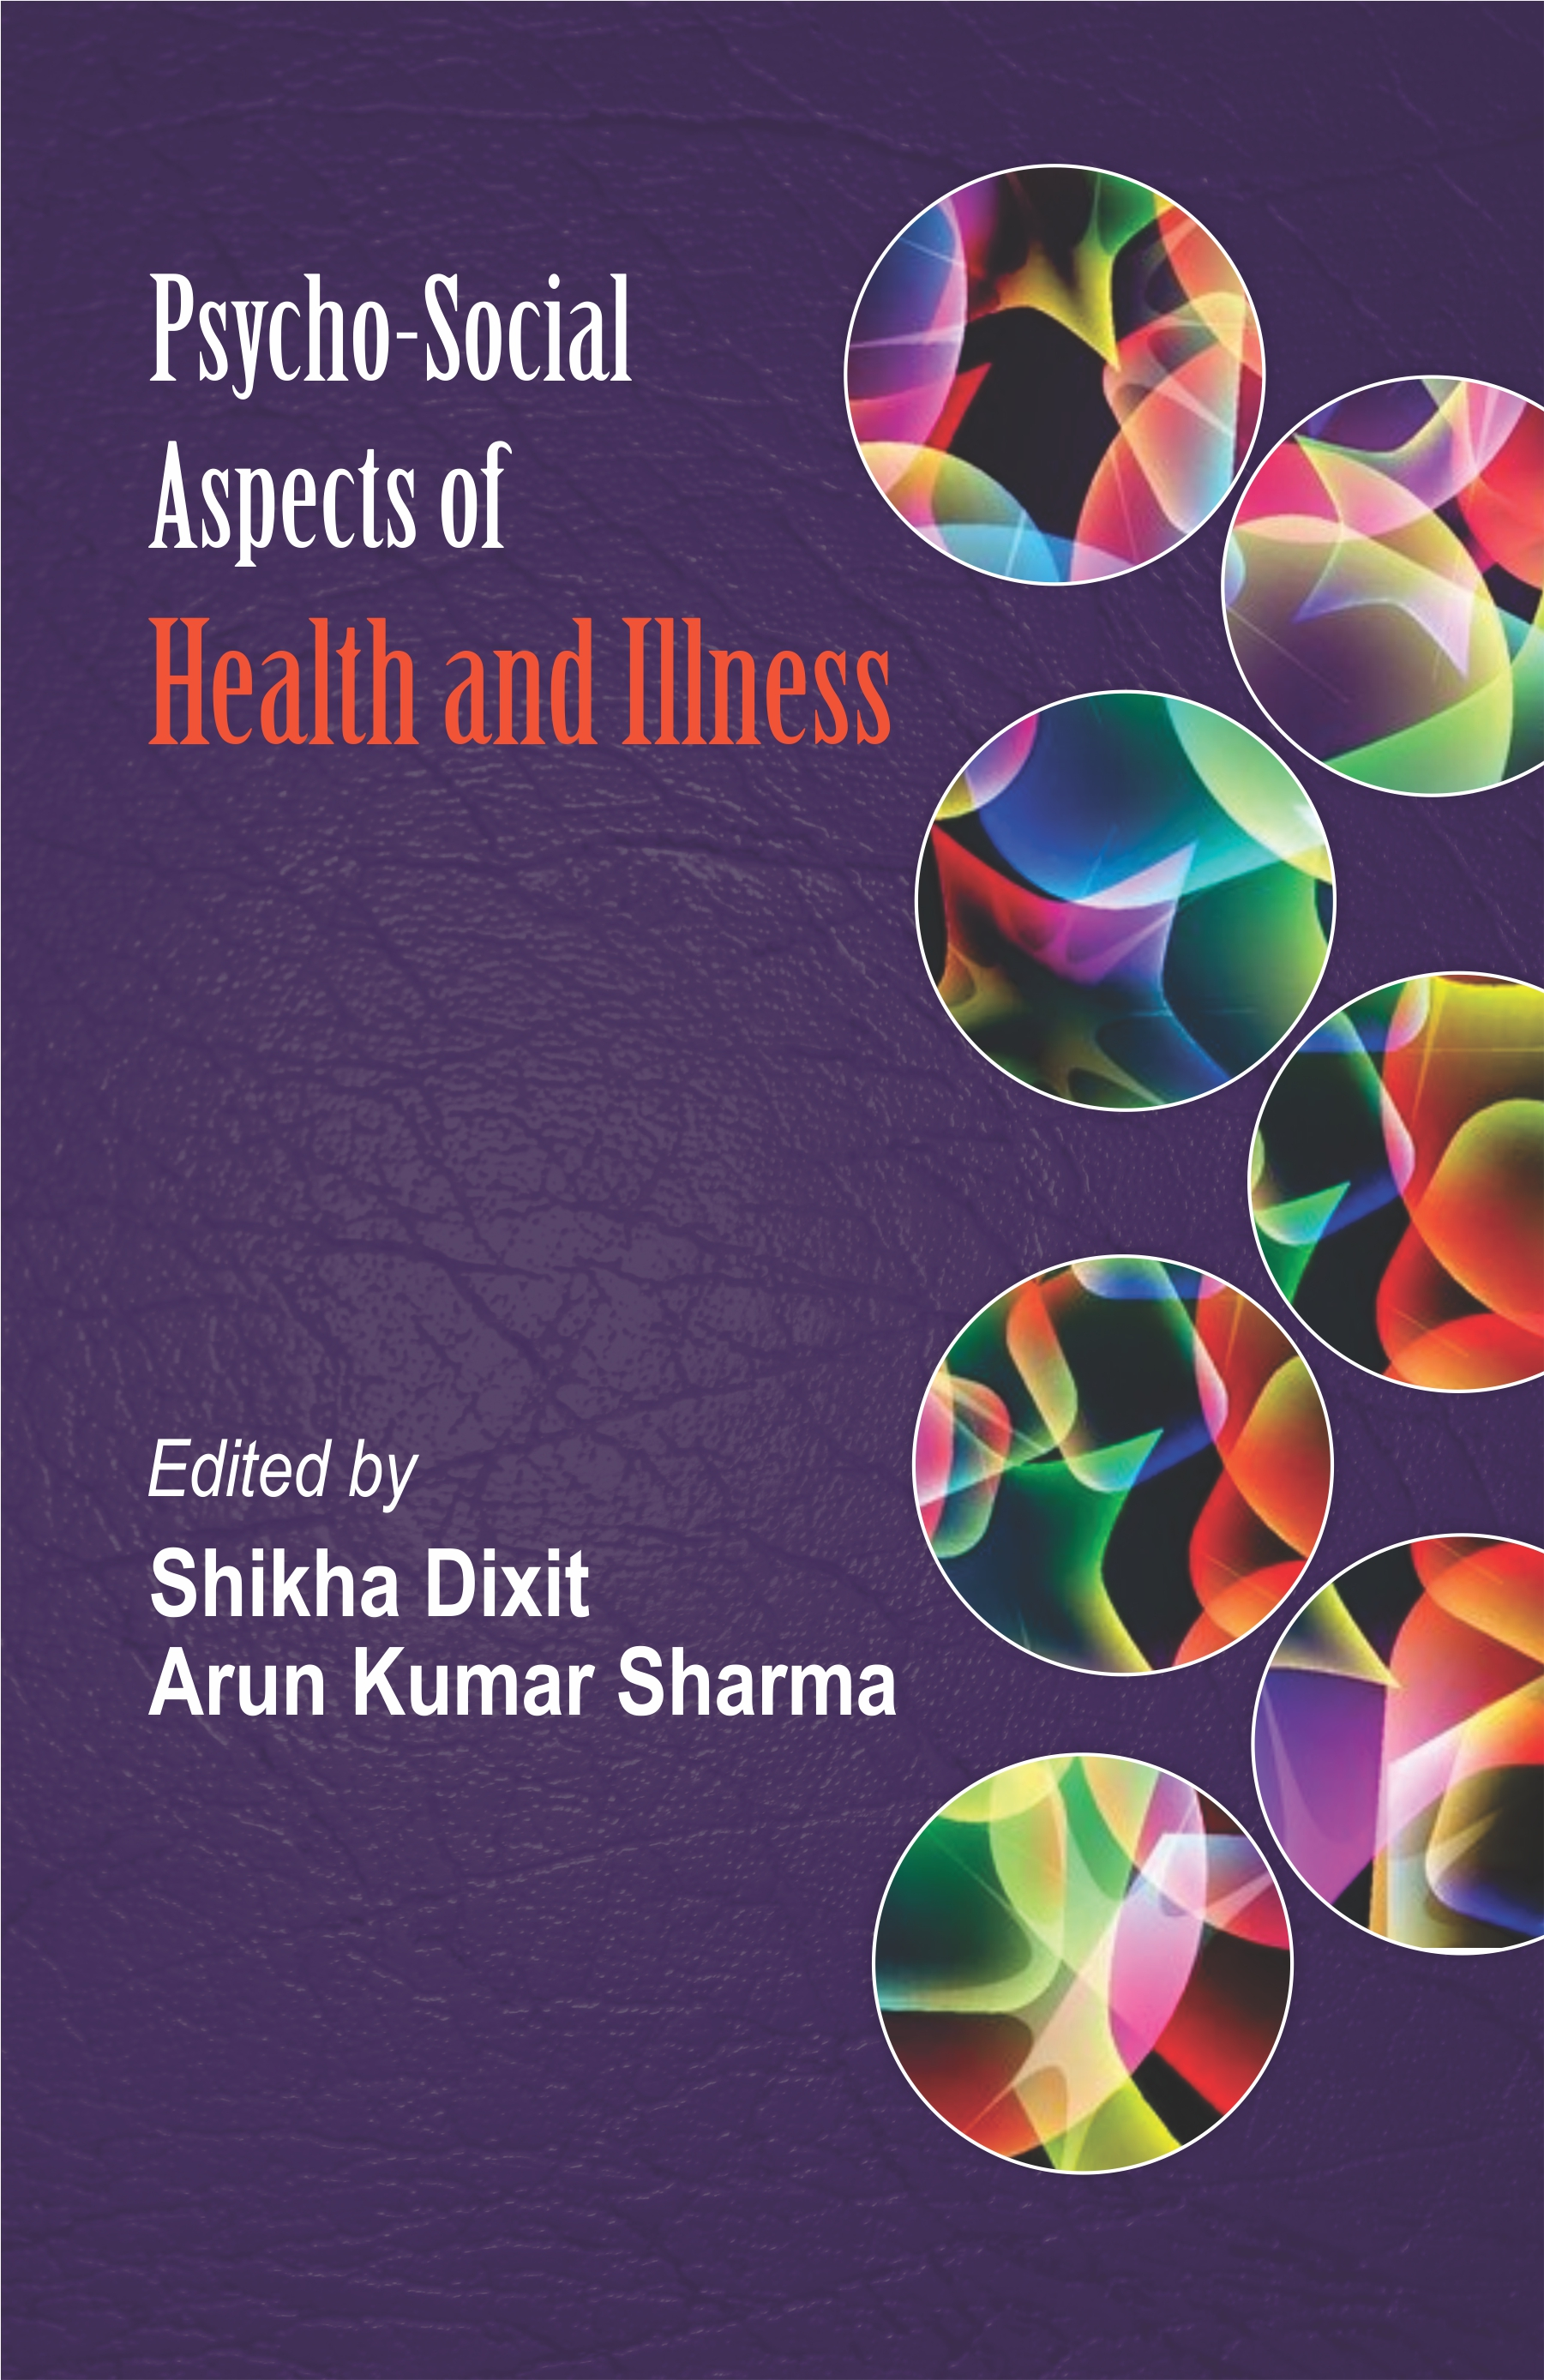 Psycho Social Aspects of Health and Illness